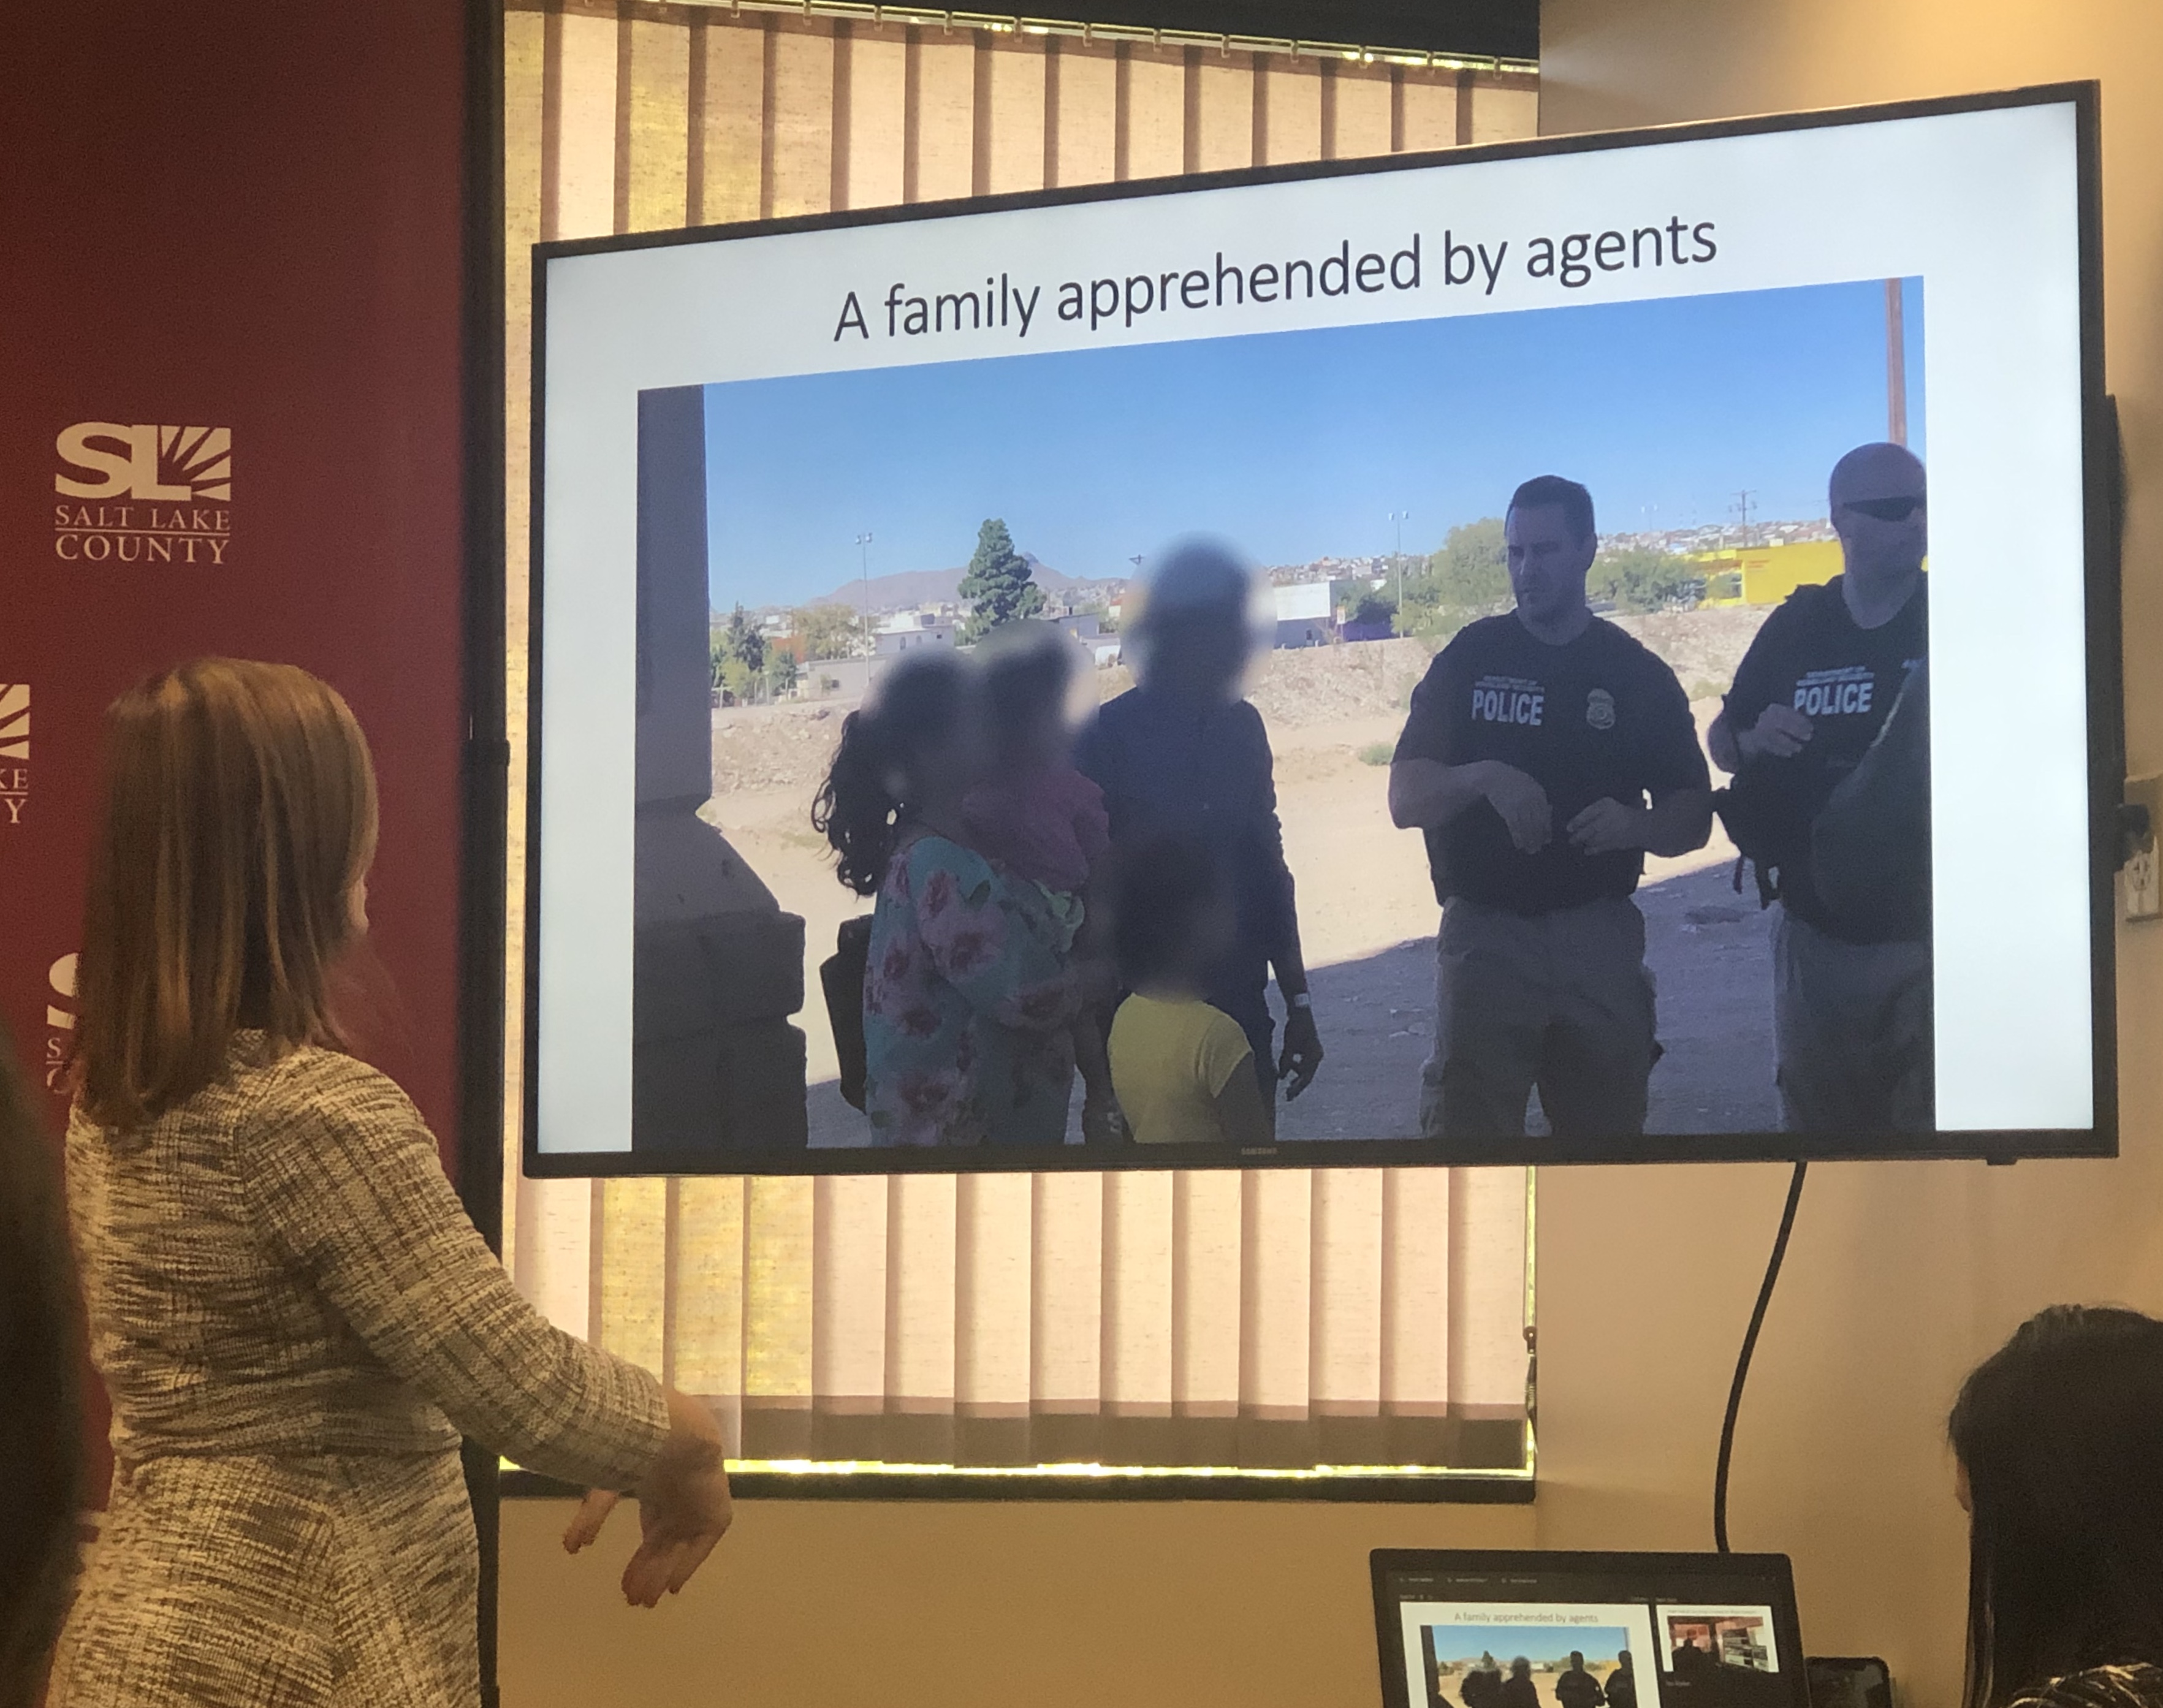 Salt Lake County Mayor Jenny Wilson shows members of the media a picture she took of a family being apprehended at the border by agents during a tour she took of the Paso Del Norte Port of Entry and Border Patrol Satellite Processing Center in El Paso County, Texas, with members of the National Association of Counties on Tuesday, September 17, 2019. Wilson said she chose to blur the faces of the family for privacy during a news conference Thursday, Sept. 19, 2019.